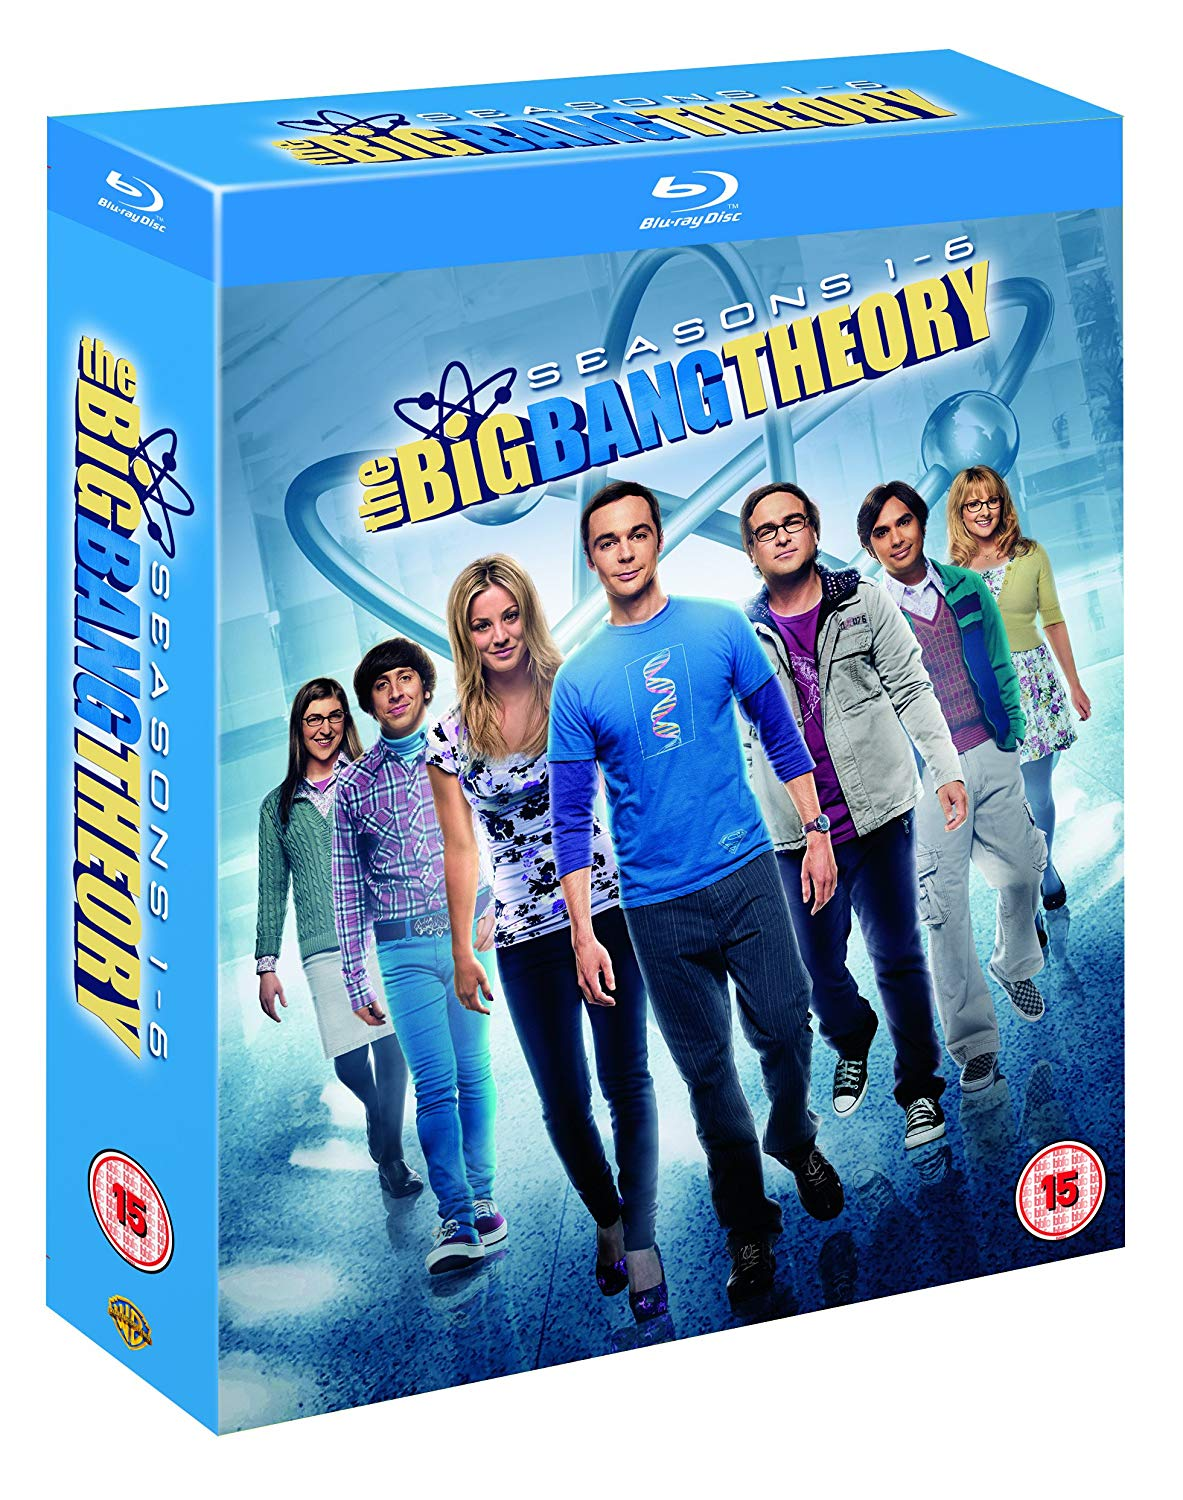 Tv Show cover: The Big Bang Theory